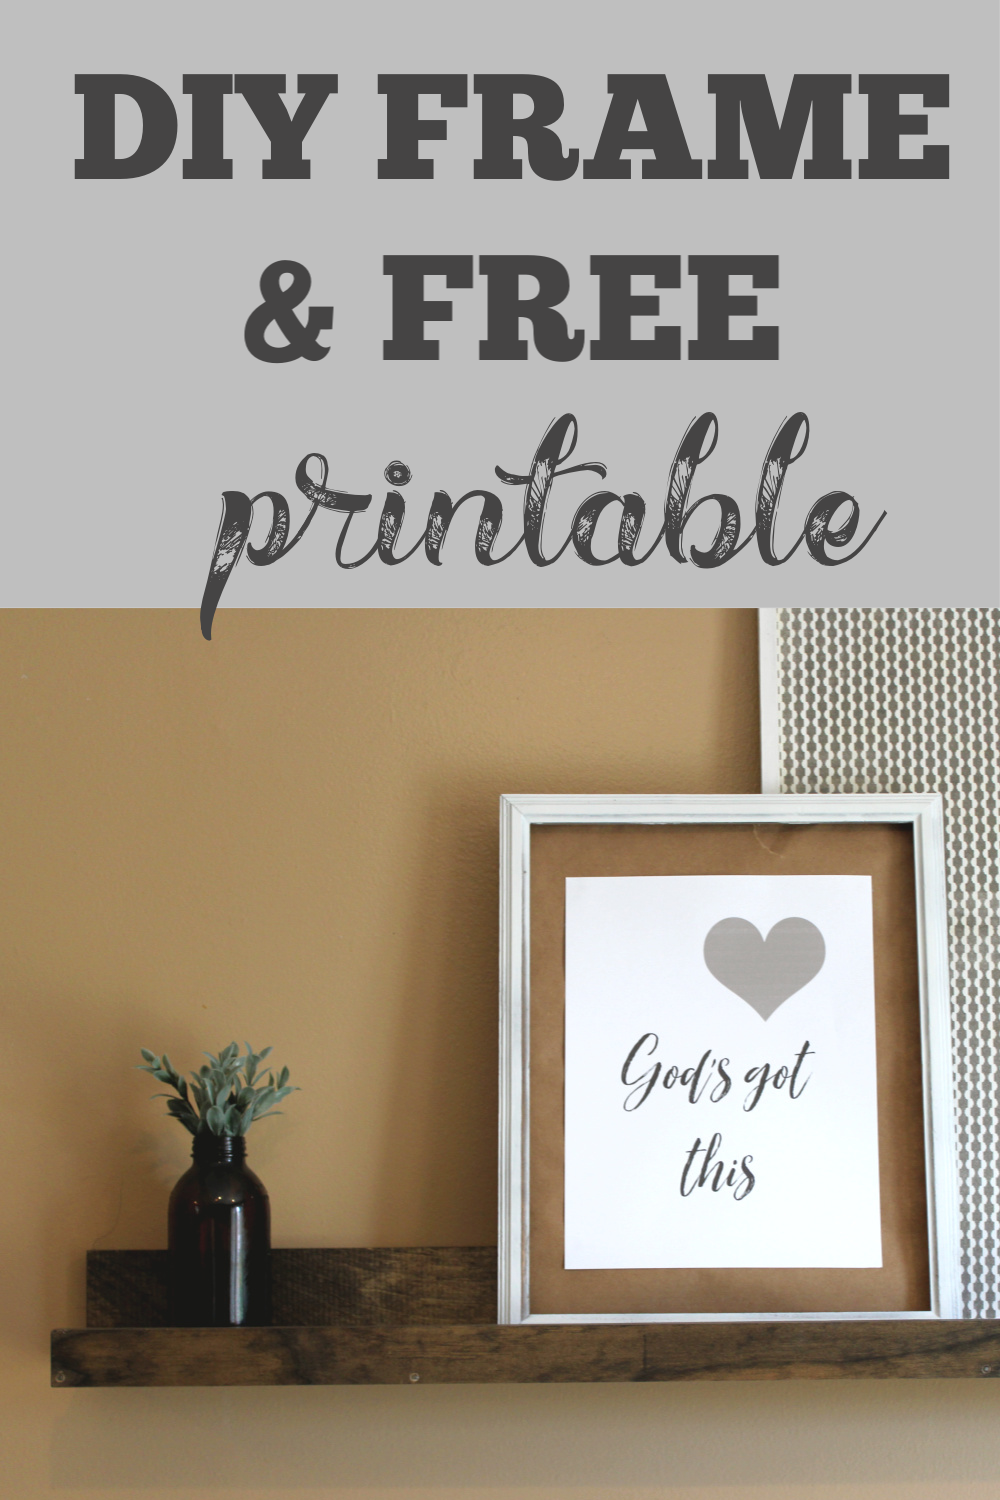 Hey guys, I'm back with another Free Printable – God's Got This! This is an 8×10 printable that will fit in some of my DIY Frames!